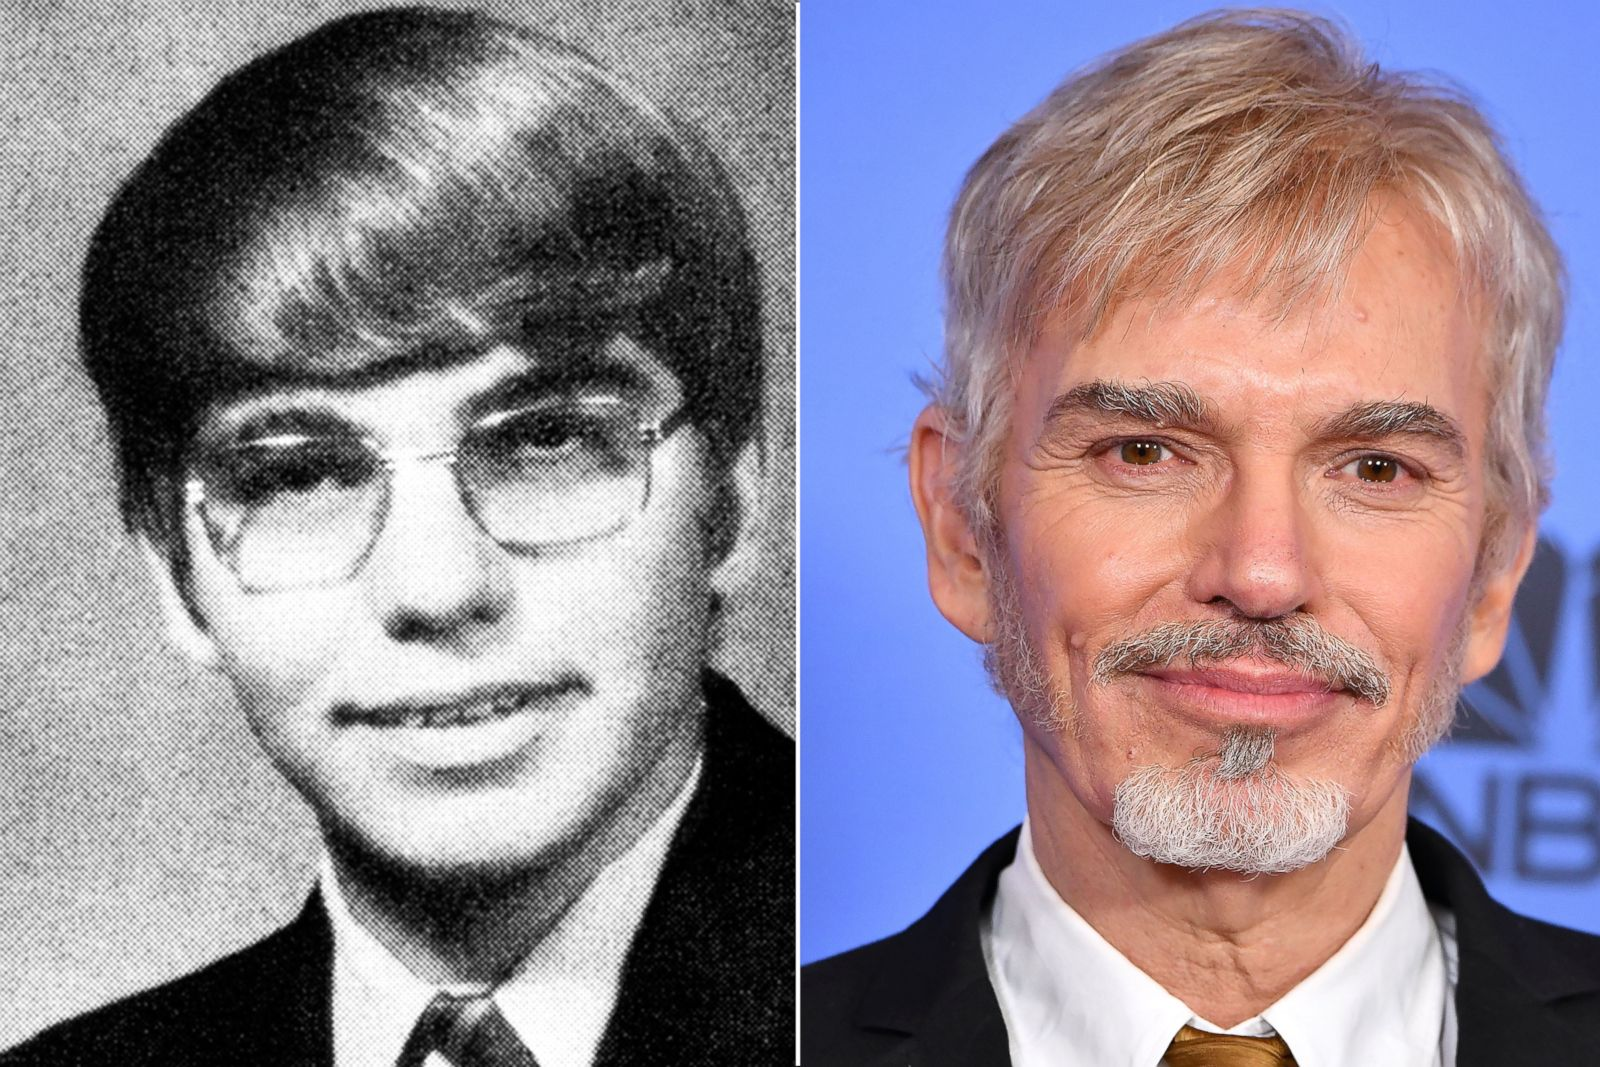 ' ' from the web at 'https://s.abcnews.com/images/Entertainment/billy-bob-thornton-ht-gty-ml-170801_3x2_1600.jpg'